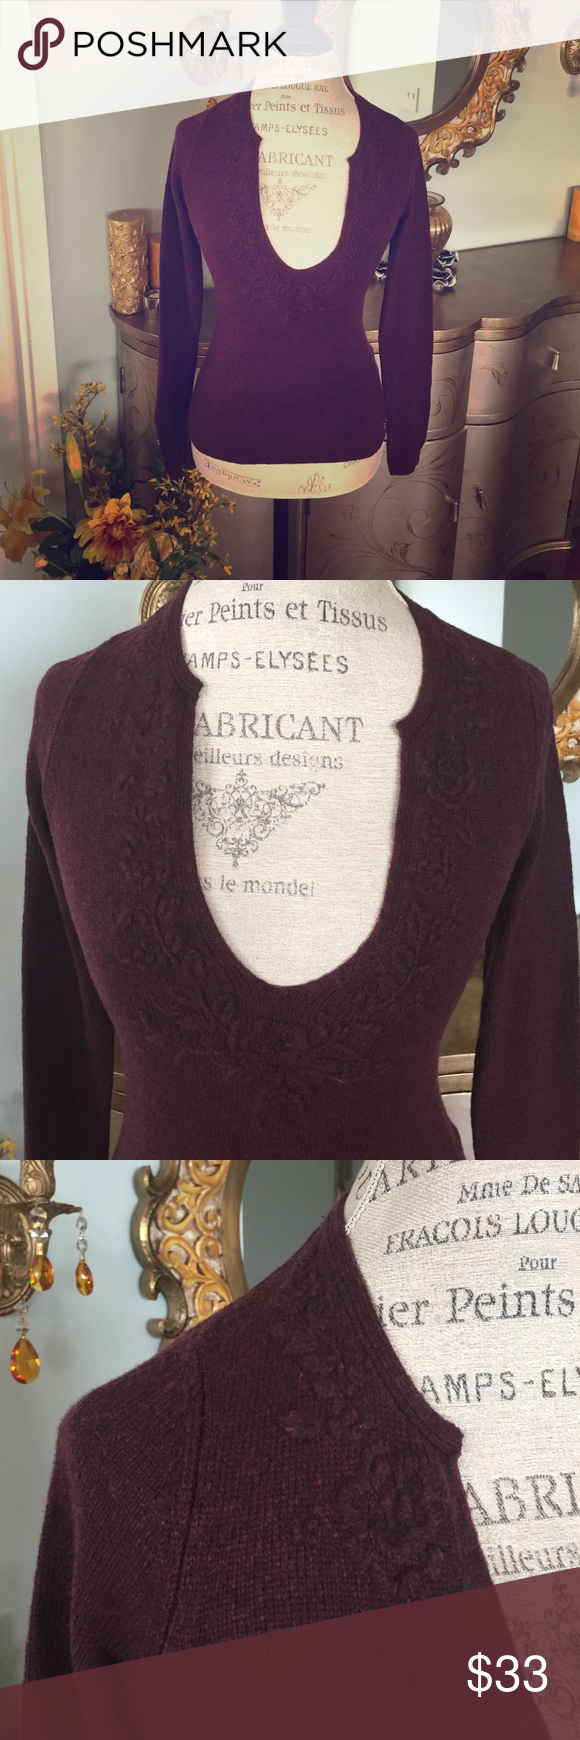 Esprit Wool Sweater Burgundy sweater detailed with beautiful floral thread work.  75 % wool, 25% rayon. Esprit Sweaters